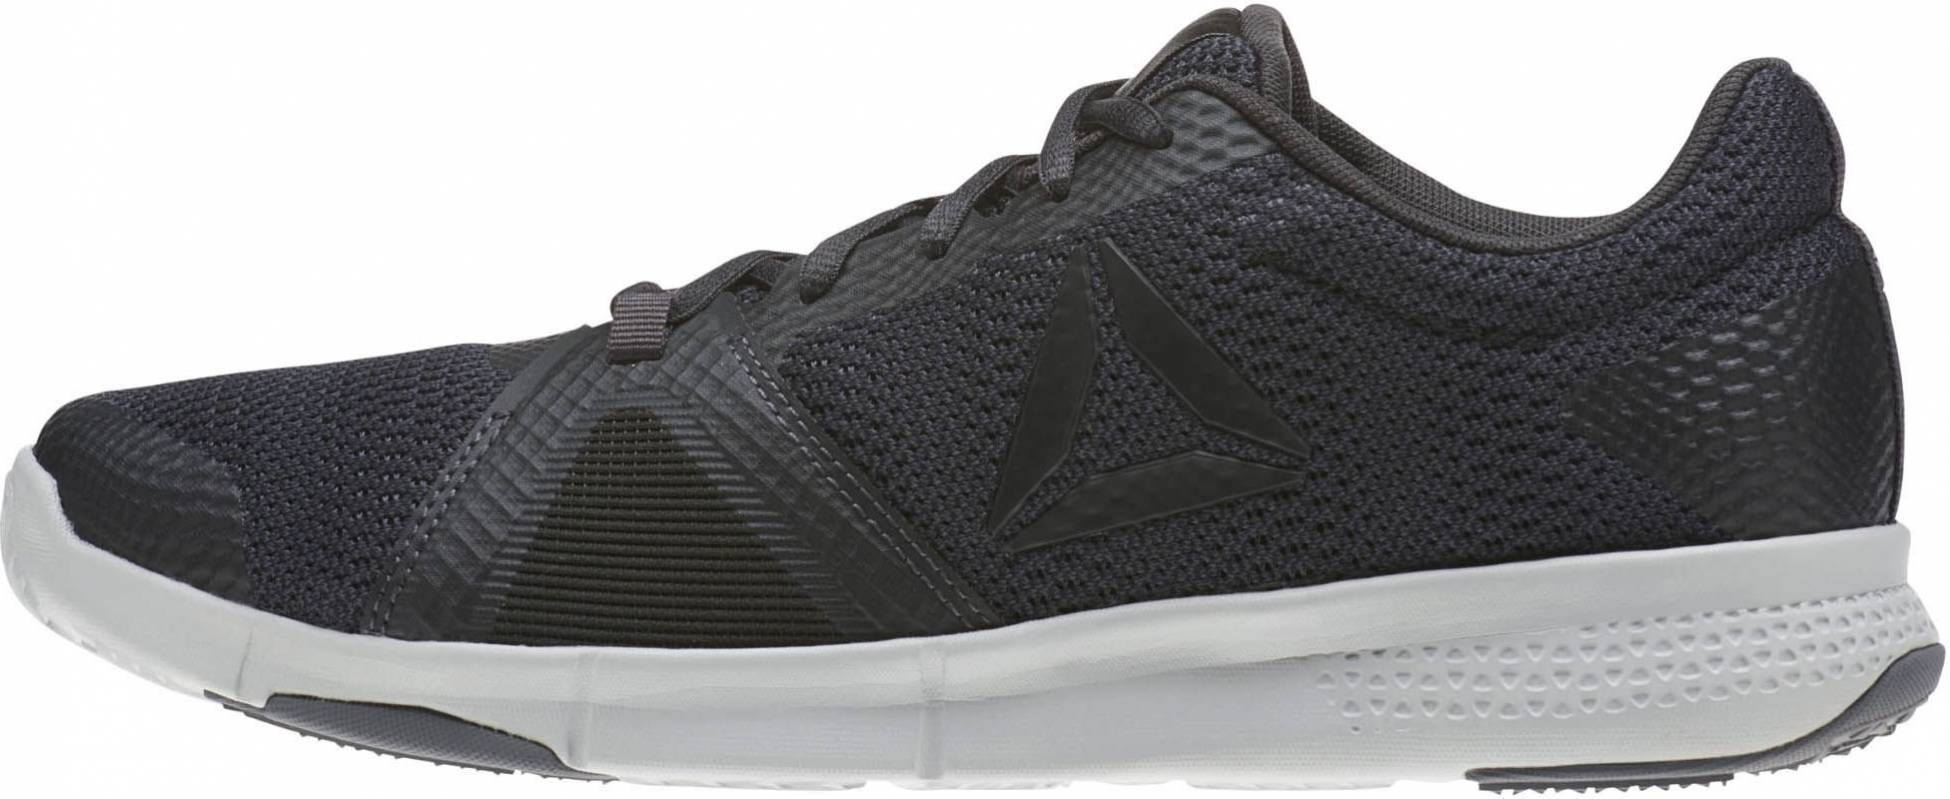 Only $54 + Review of Reebok Flexile